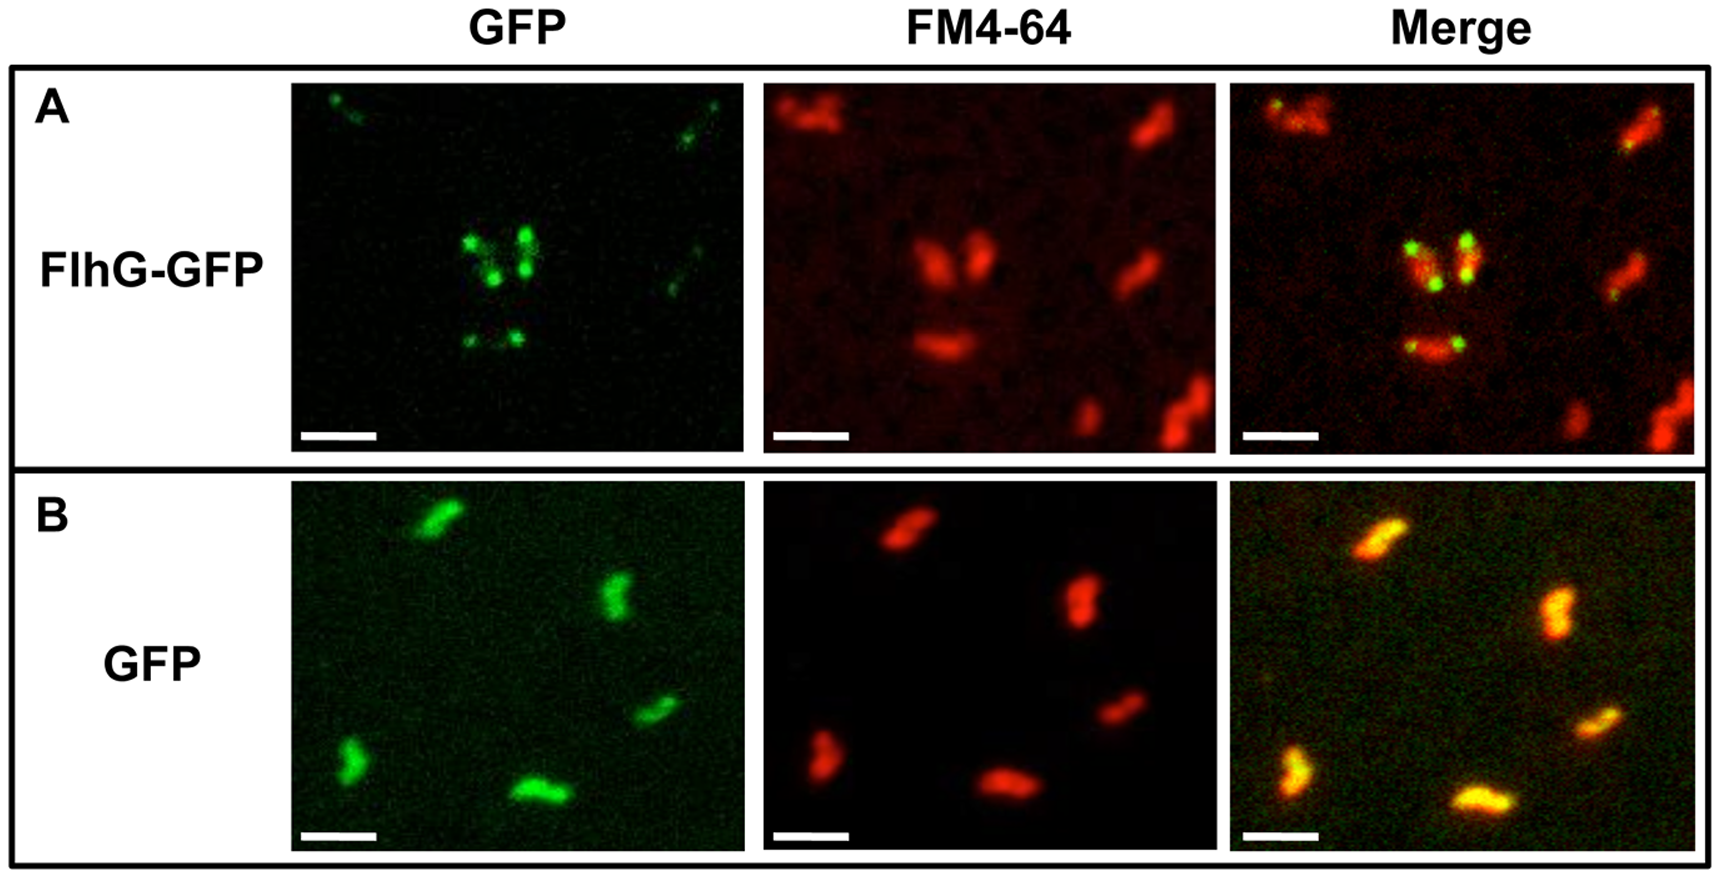 Analysis of cellular localization of FlhG-GFP.